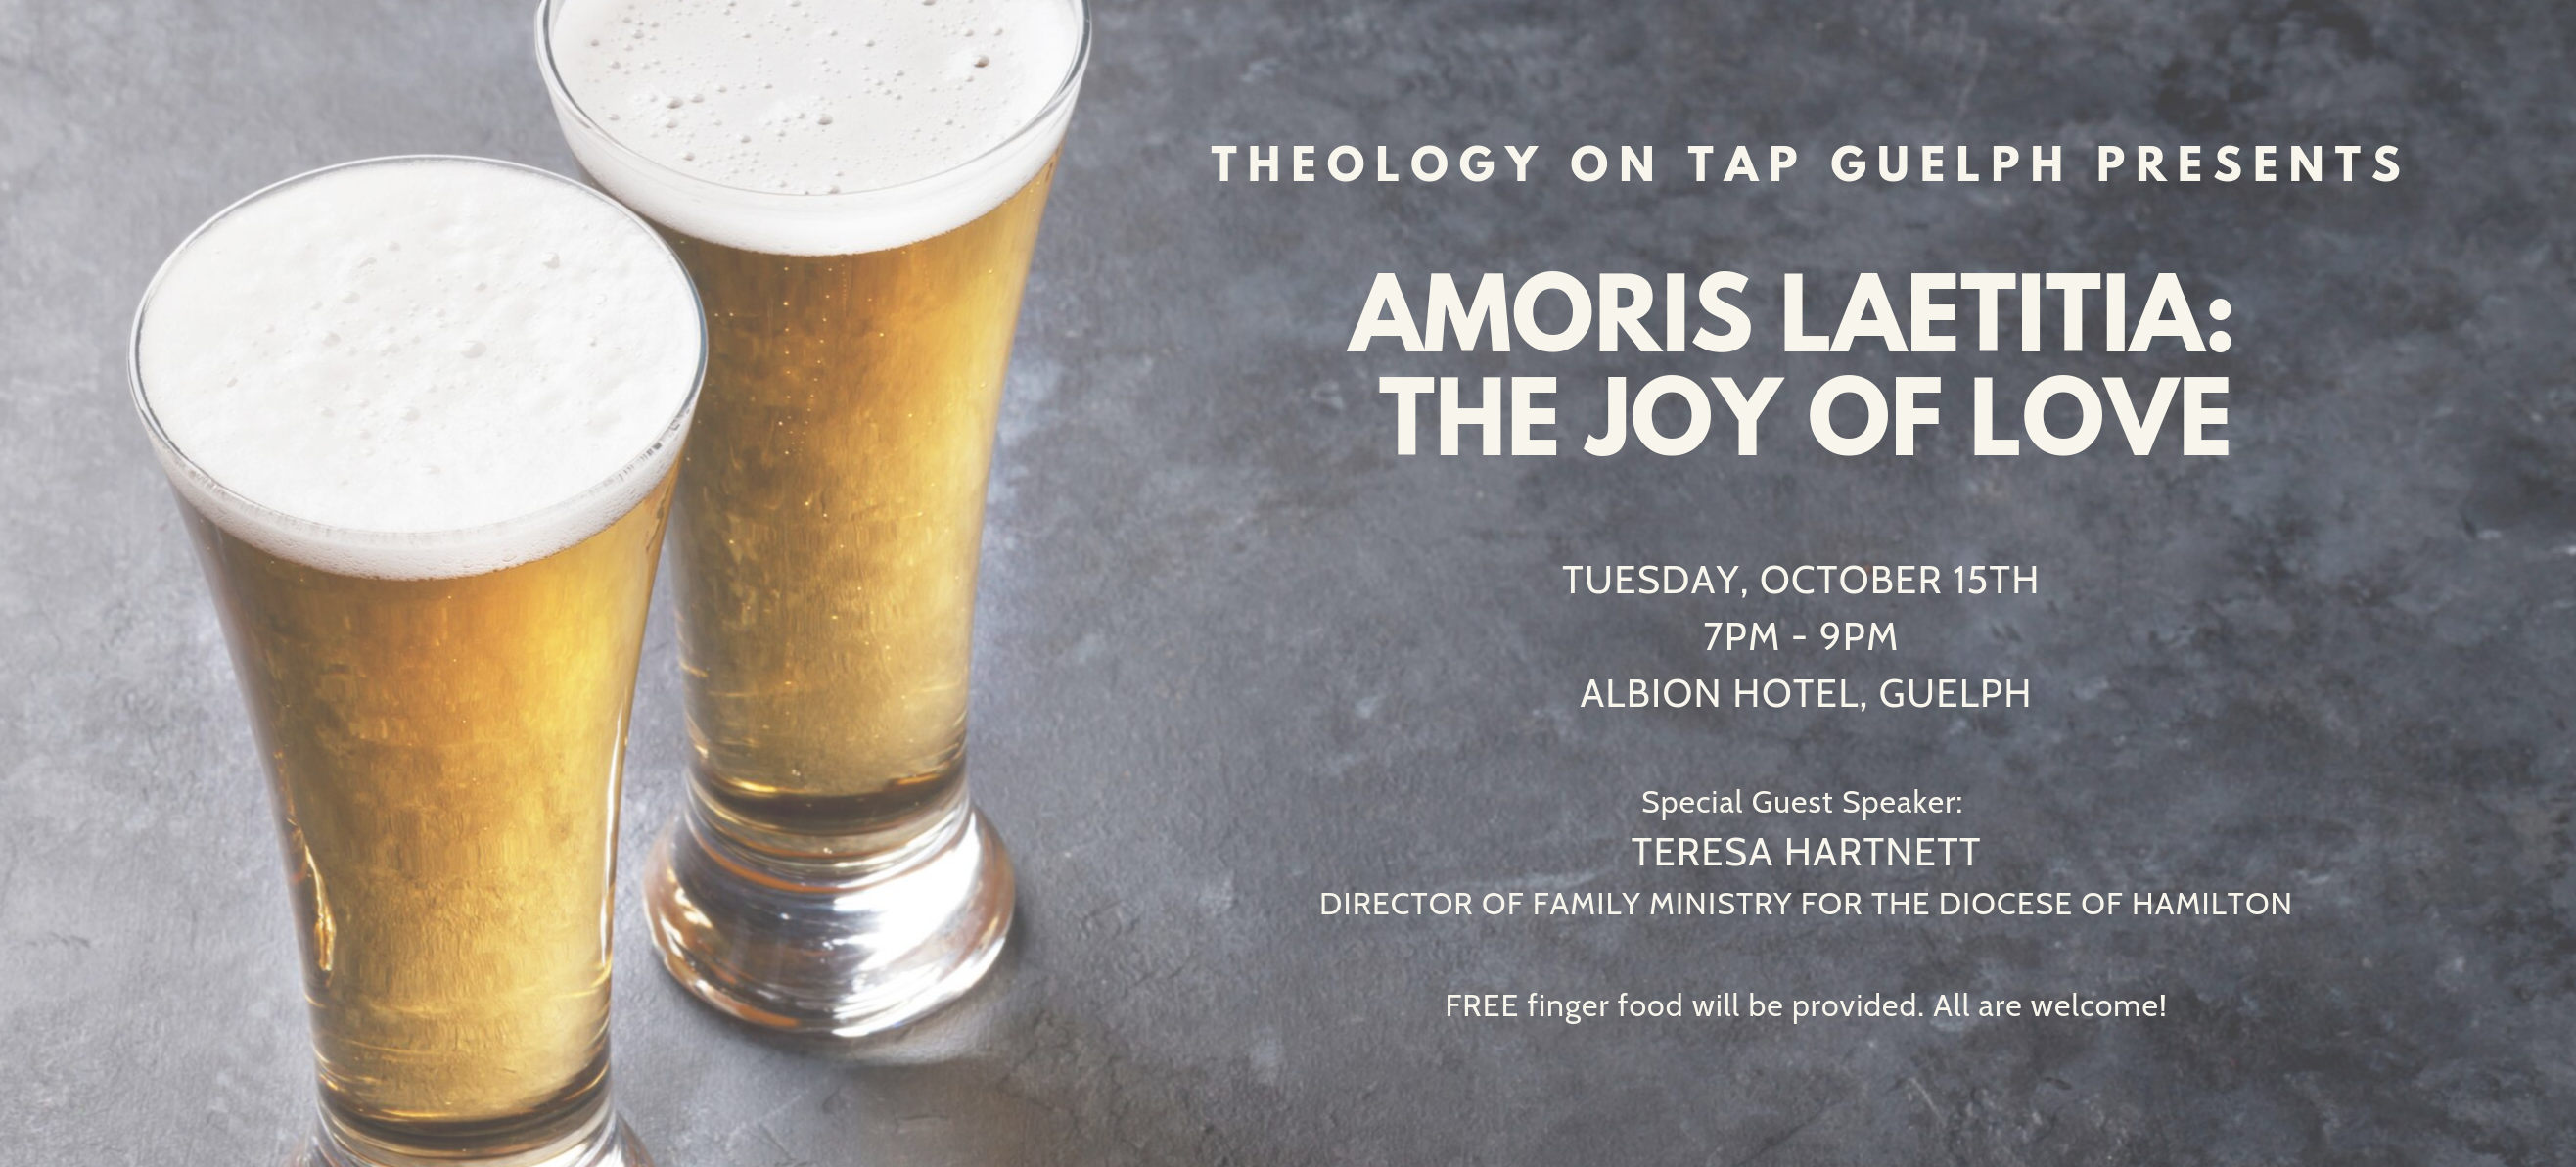 Theology on Tap presents Amoris Laetitia: The Joy of Love